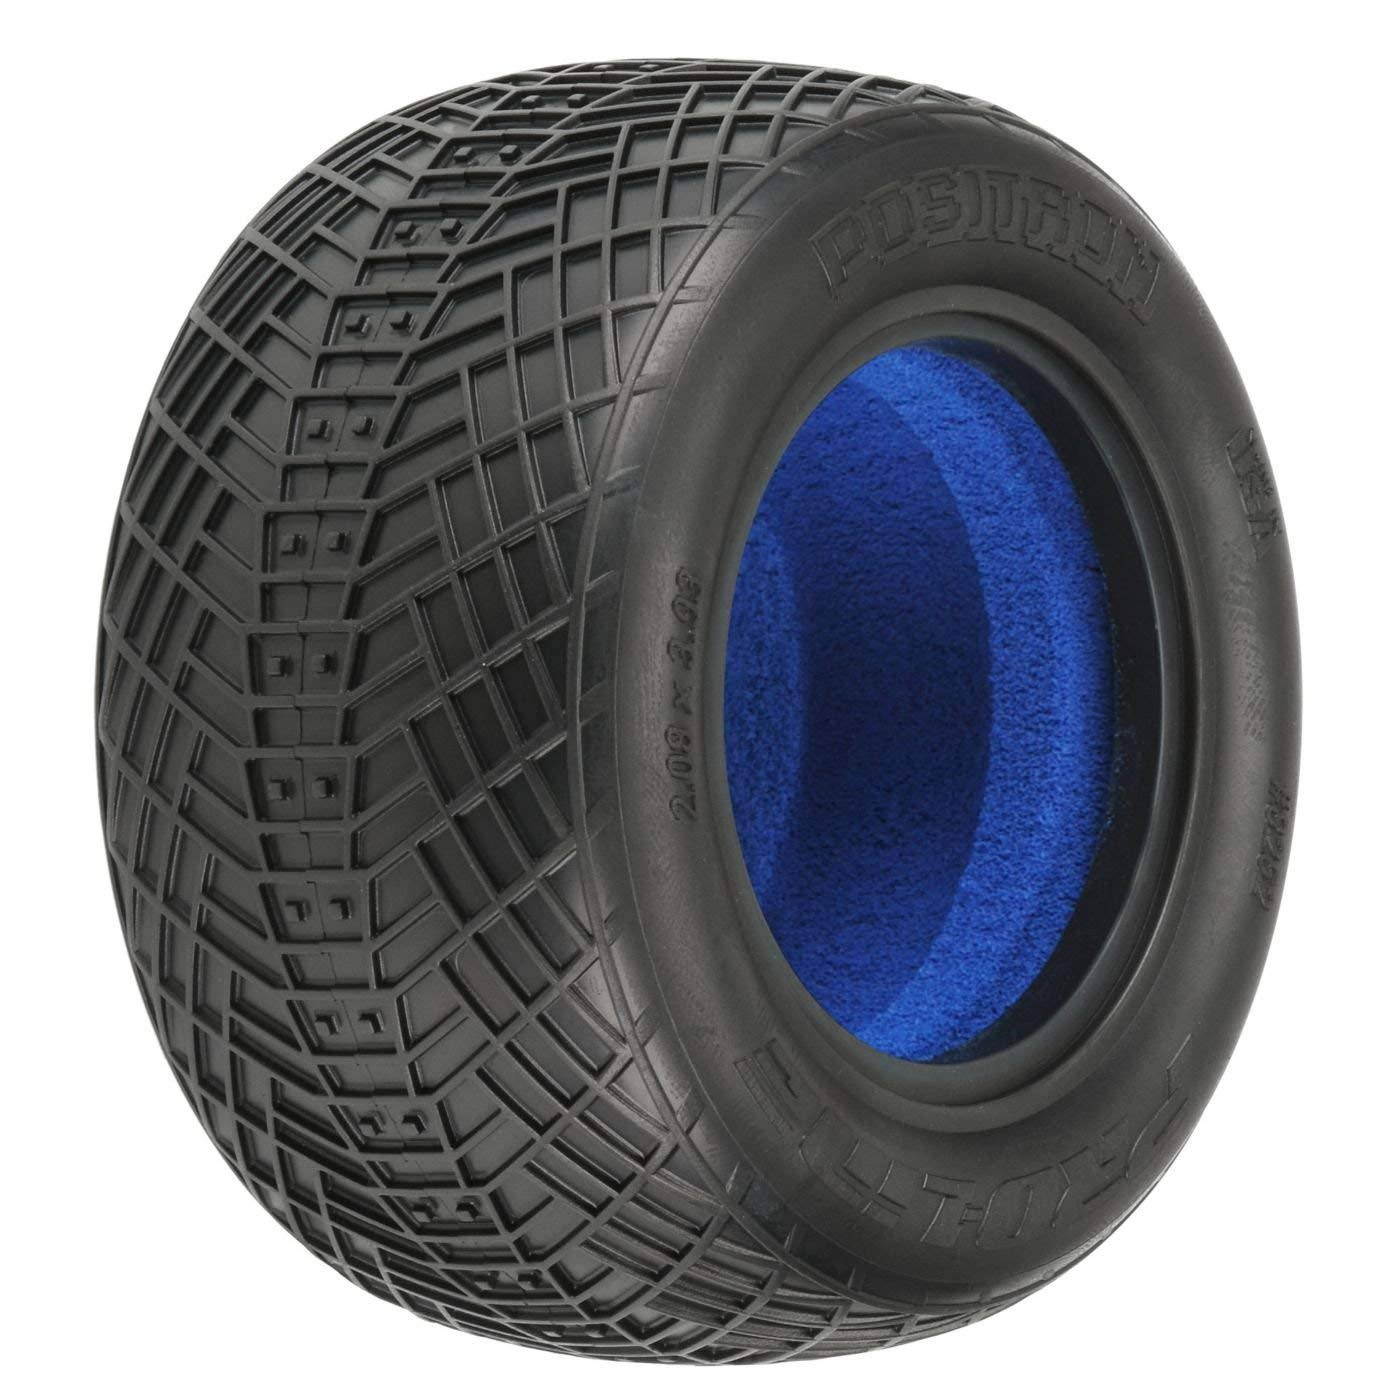 "Pro-Line Racing Positron T 2.2"" MC Truck Tires (2)"